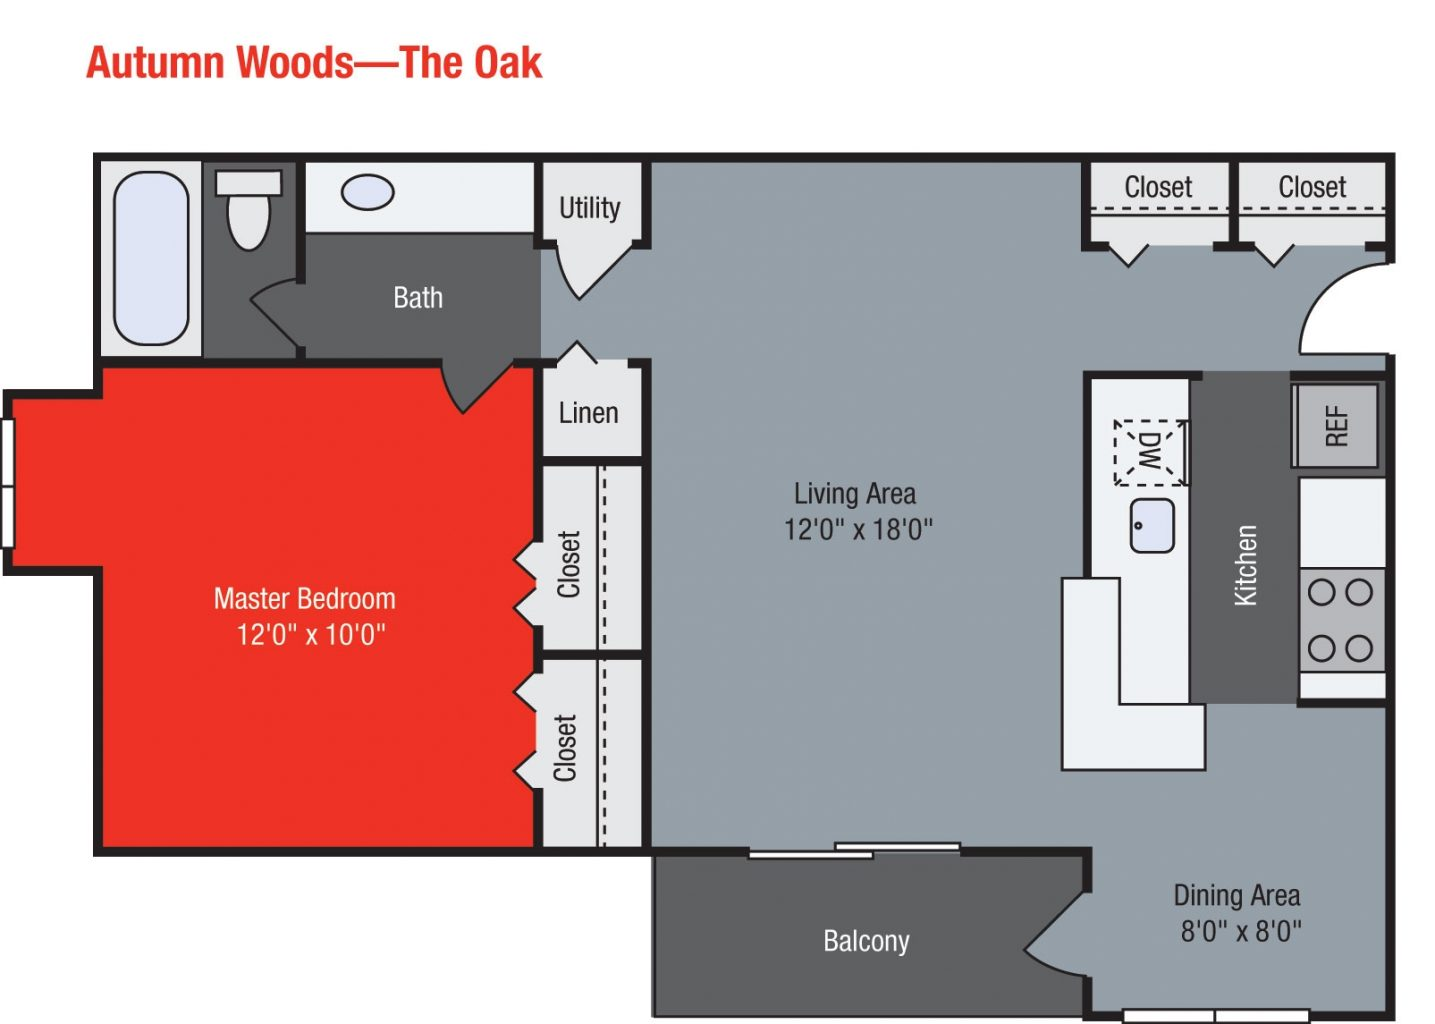 Apartments For Rent TGM Autumn Woods - Oak